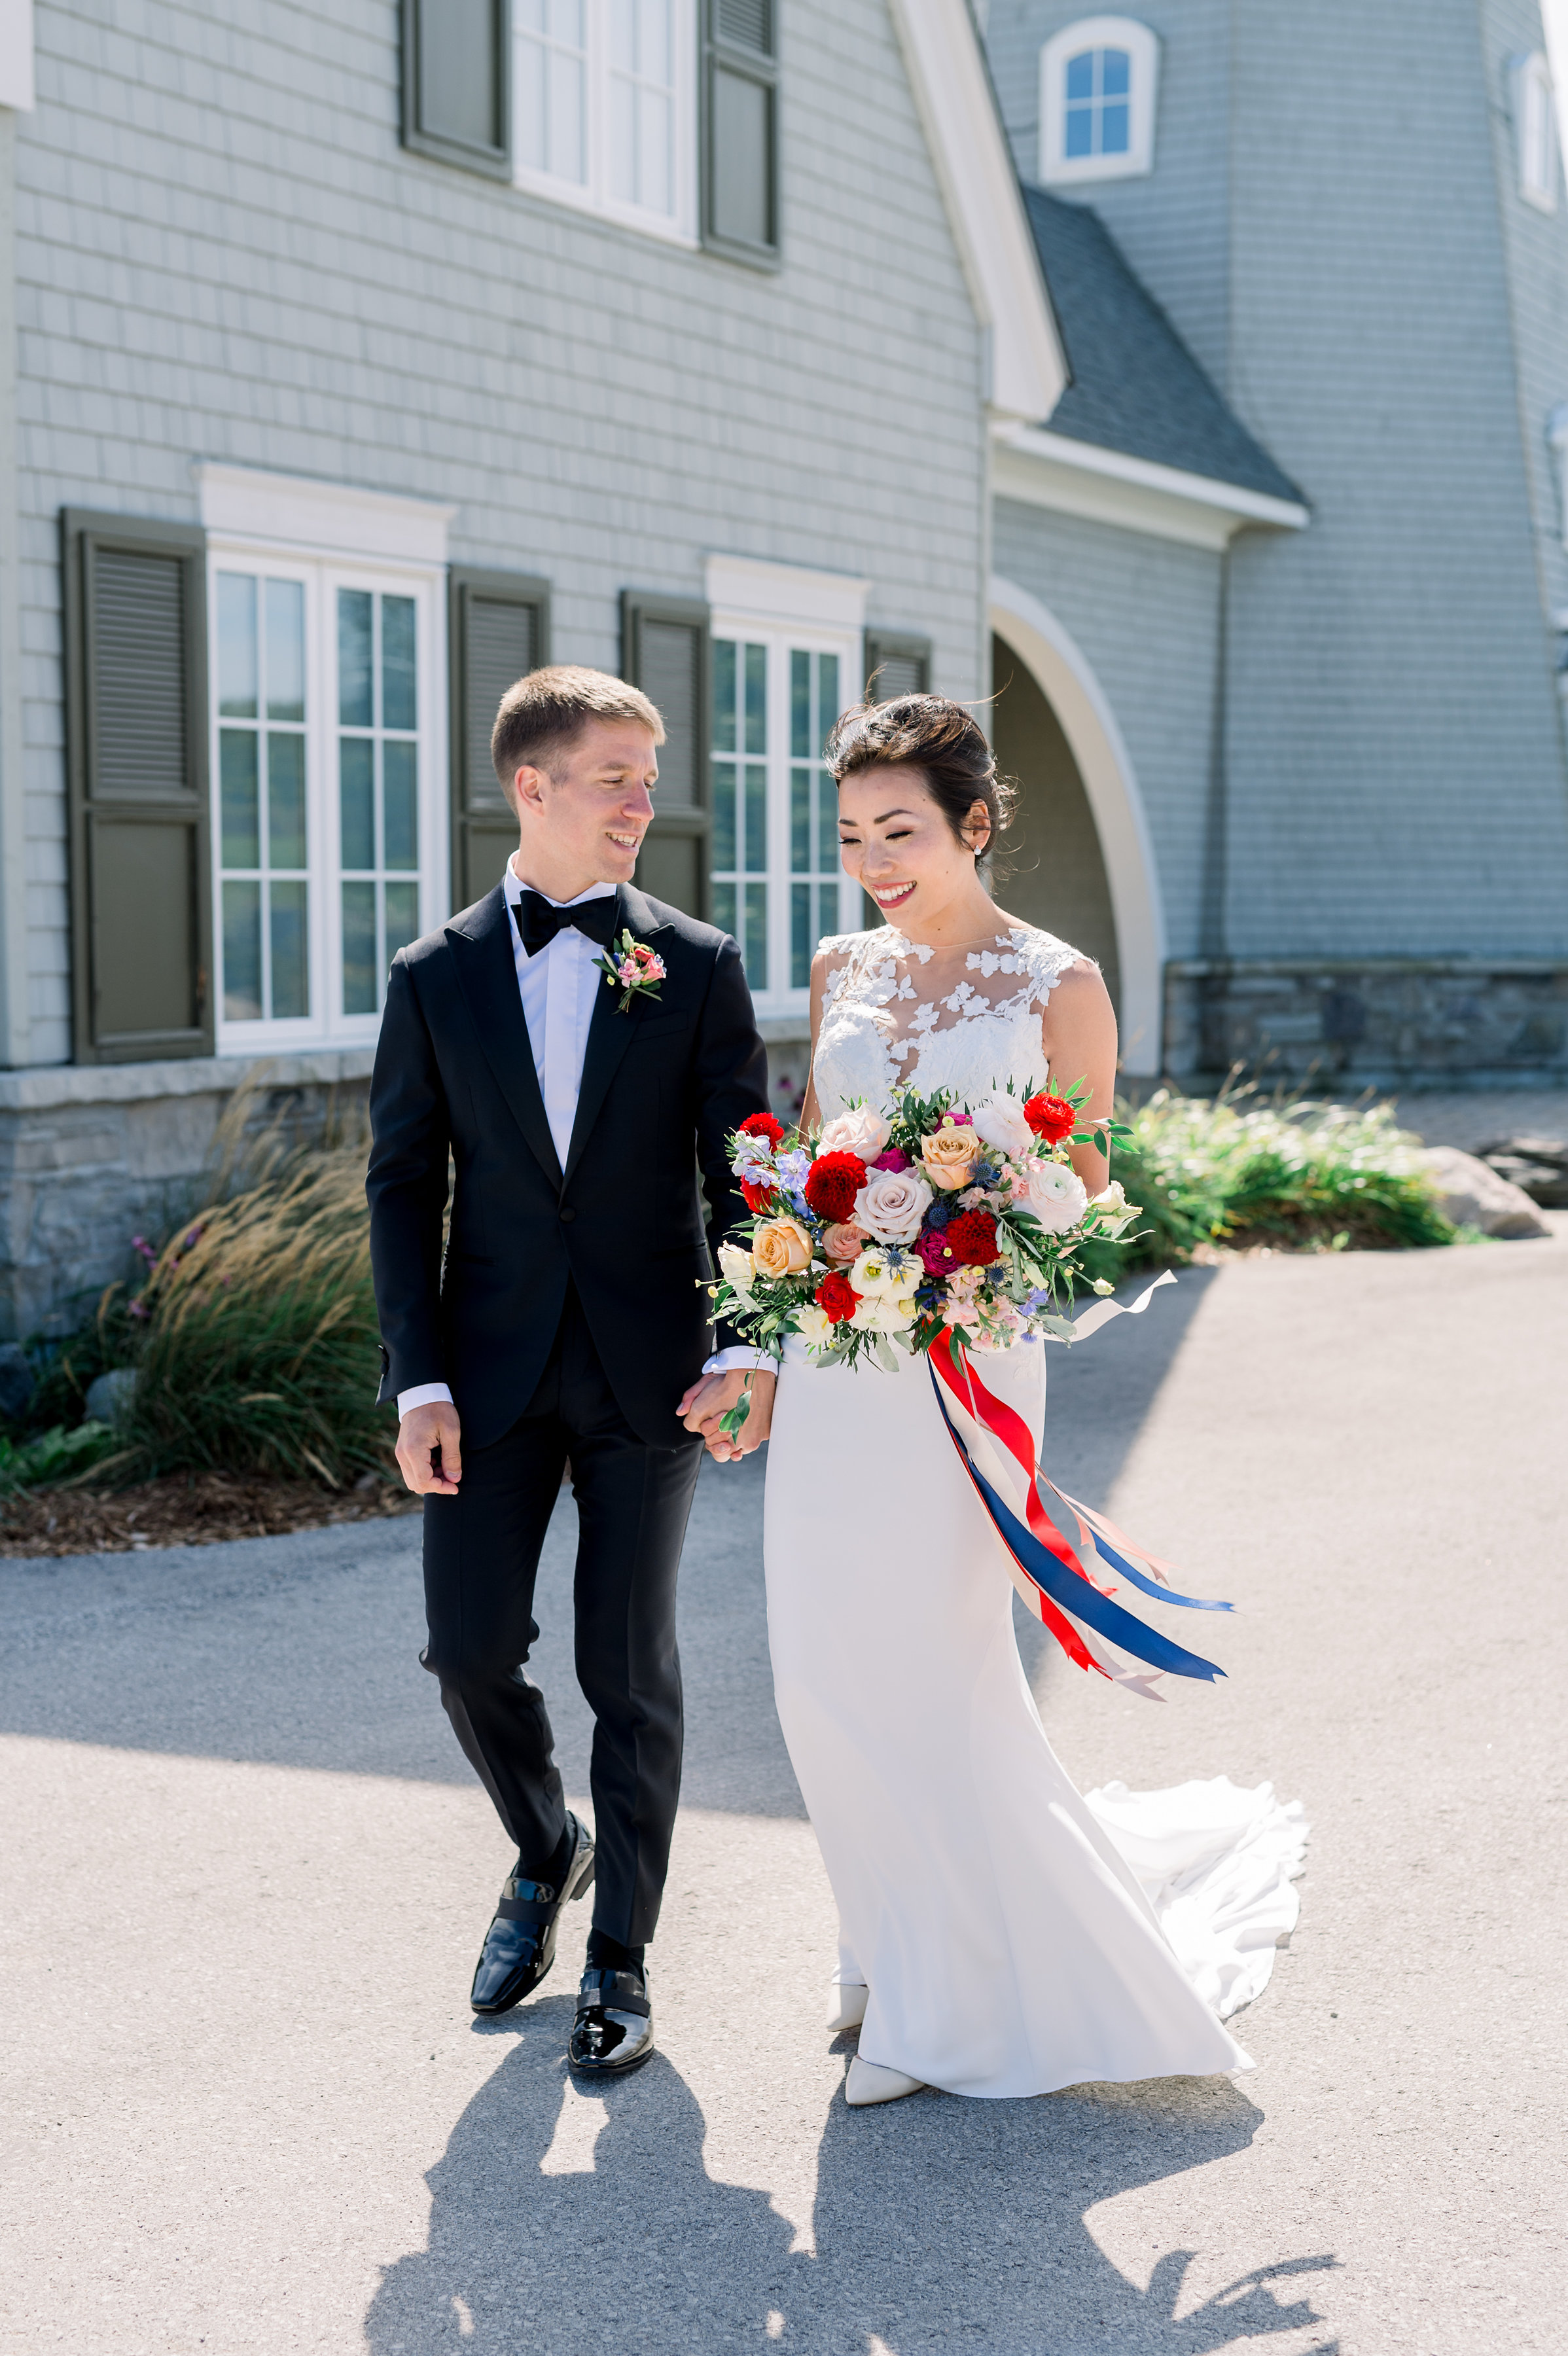 The bride and groom near the lighthouse. Photo courtesy of Whitney Heard. Bride's makeup by Maya Goldenberg, hair by Shanna Layton for Maya Goldenberg, Eco-Beauty Professional. Flowers by Tina from Living Fresh.